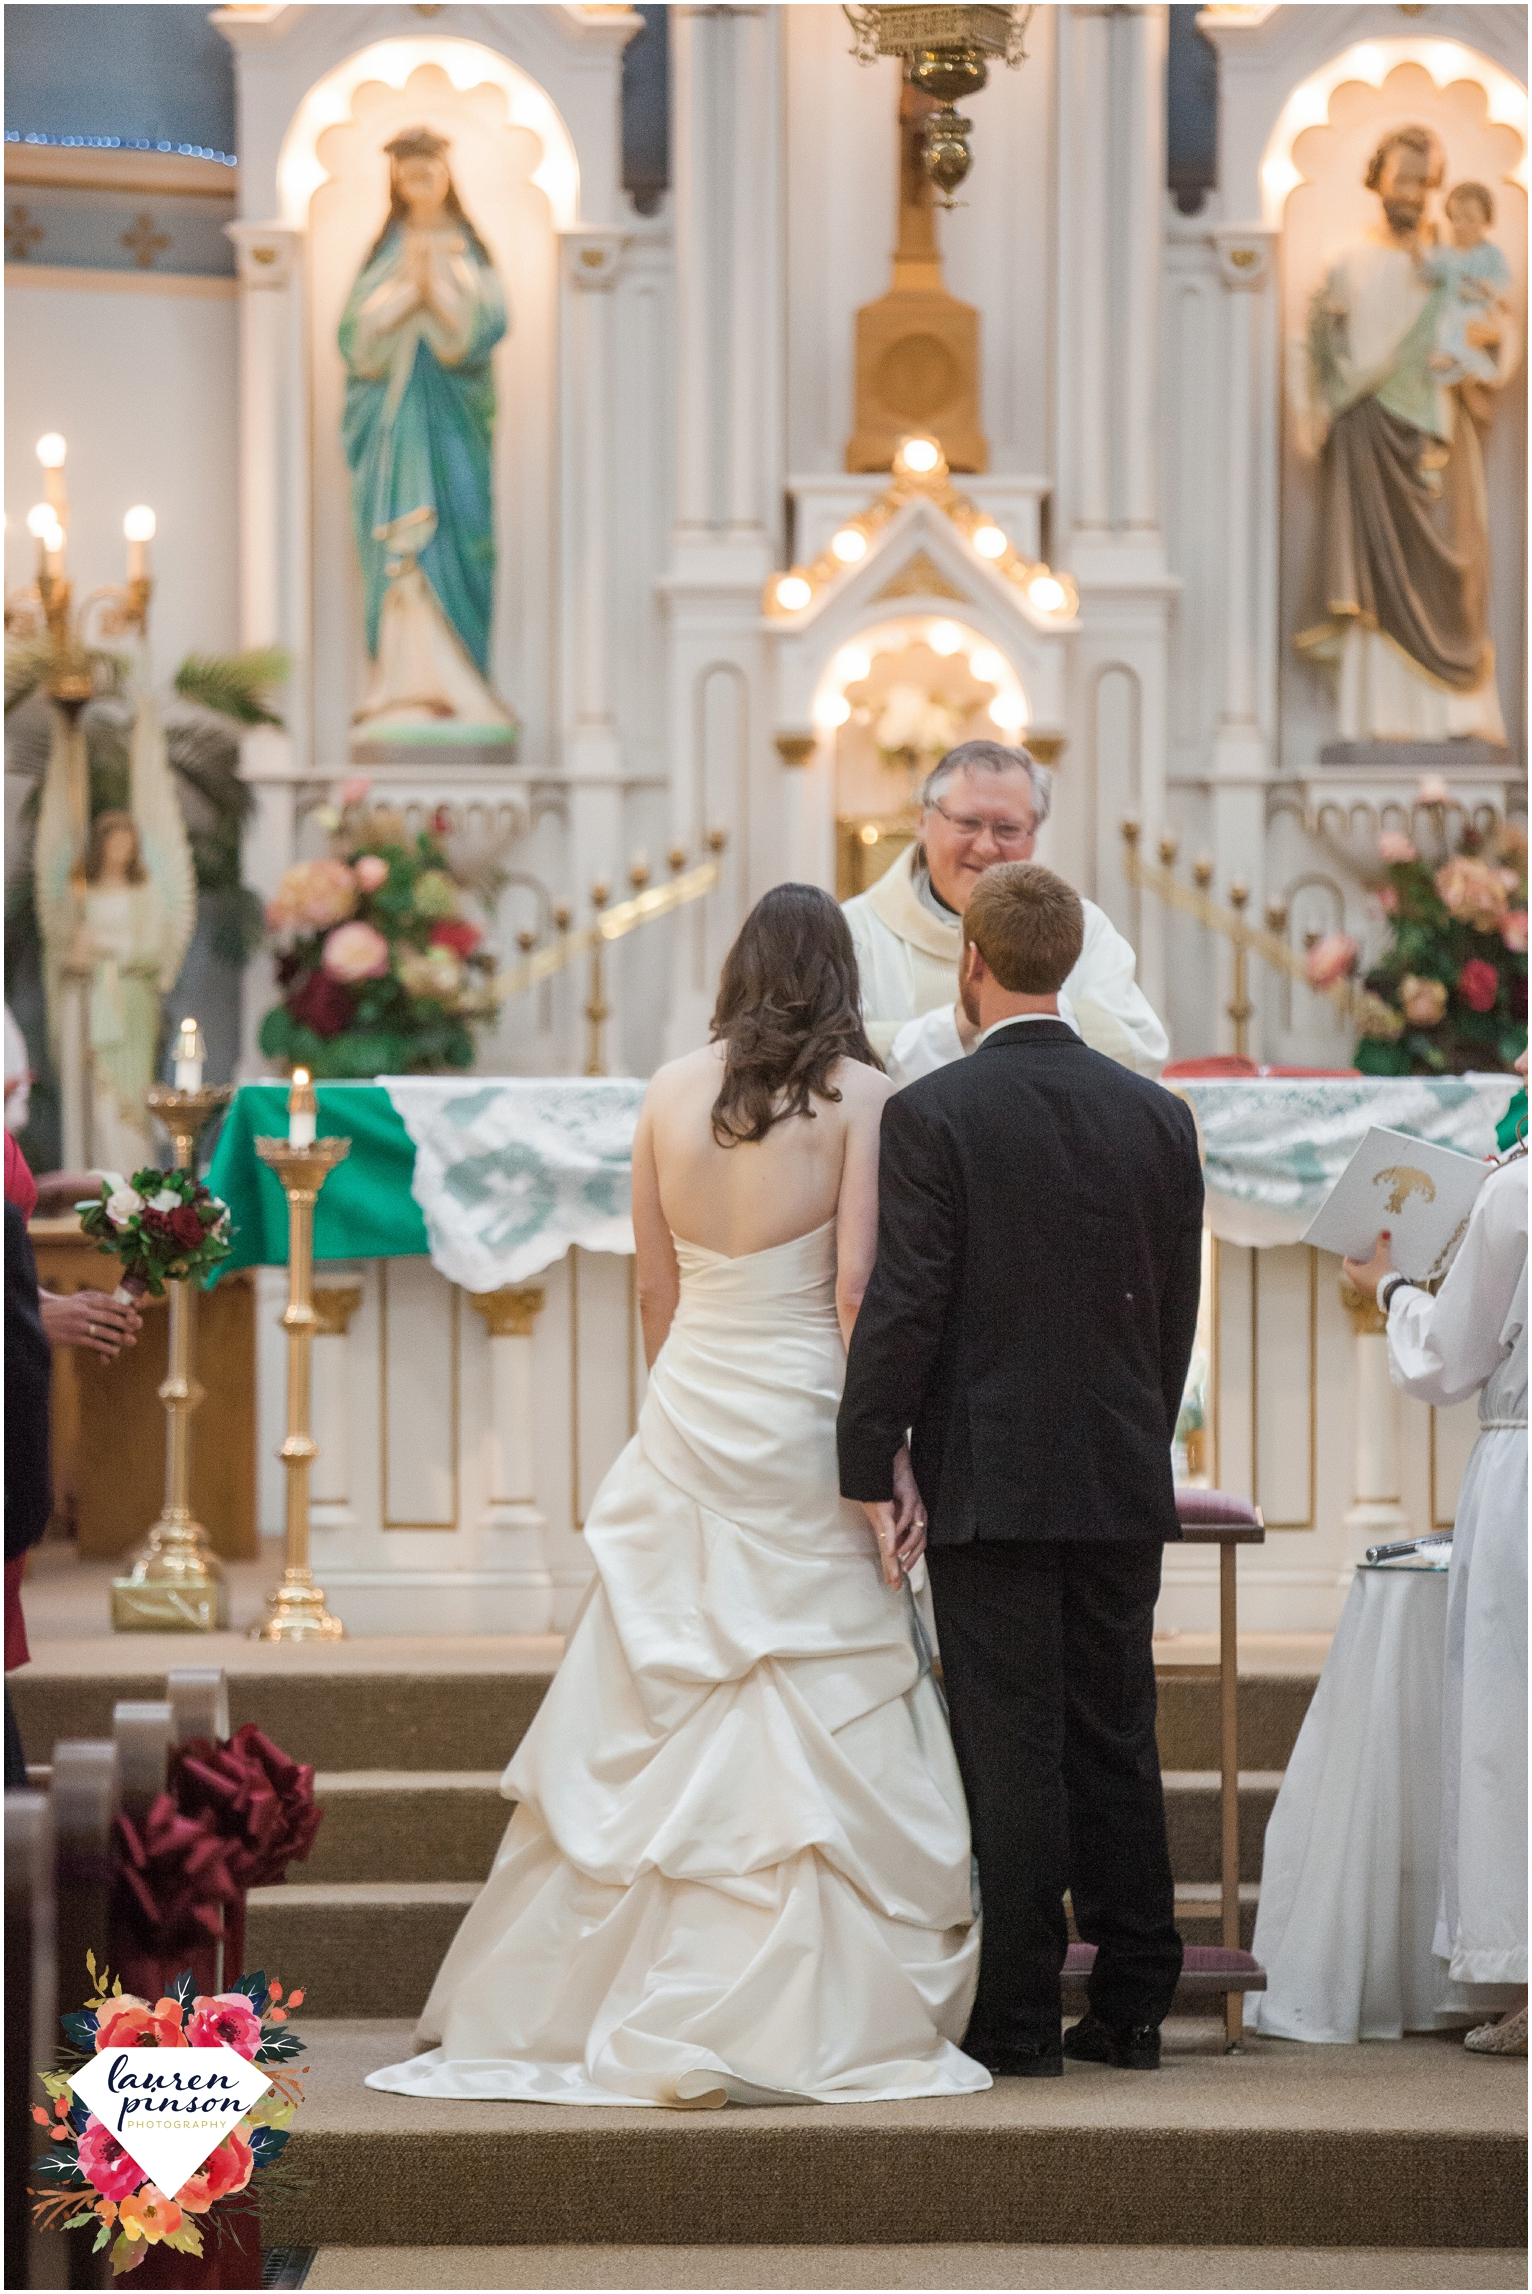 wichita-falls-wedding-photographer-OUR-Lady-queen-of-peace-catholic-wedding-the-forum-photography_0934.jpg